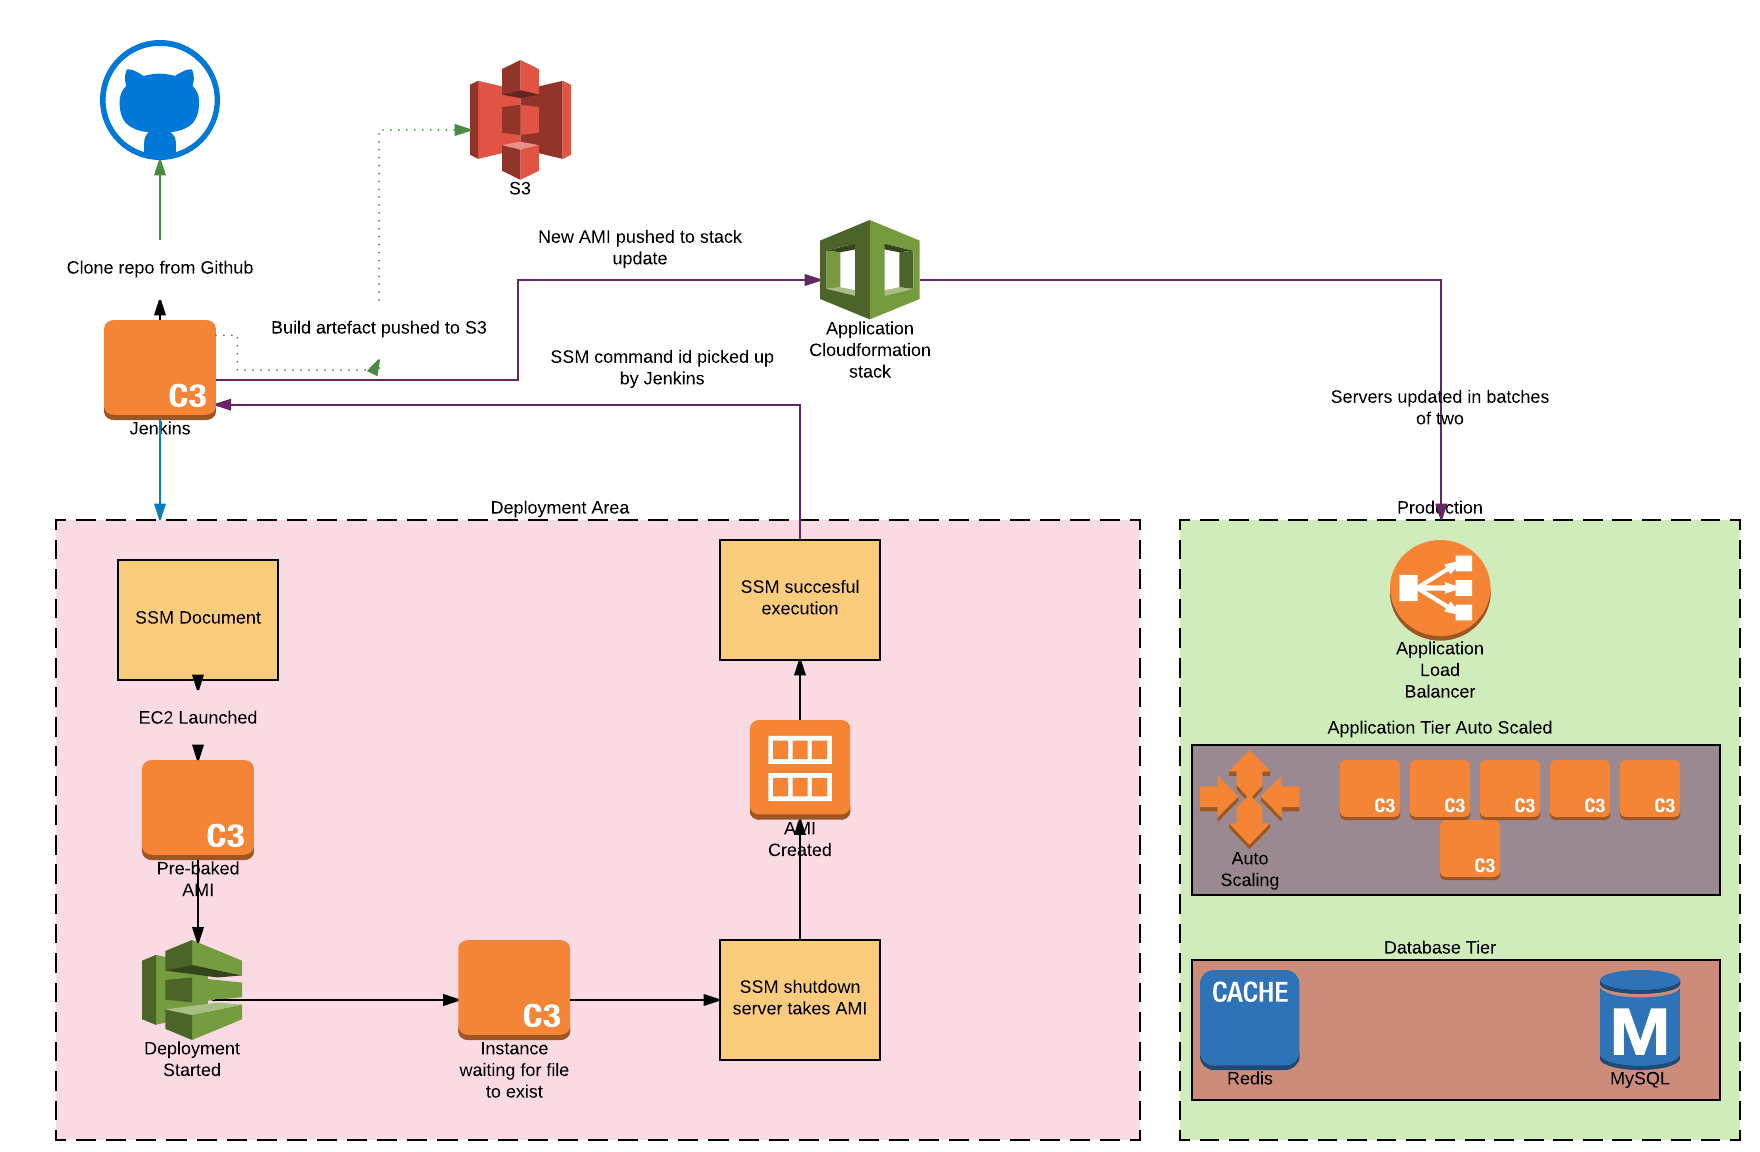 Manage your fleet at scale using EC2 Systems Manager | AWS